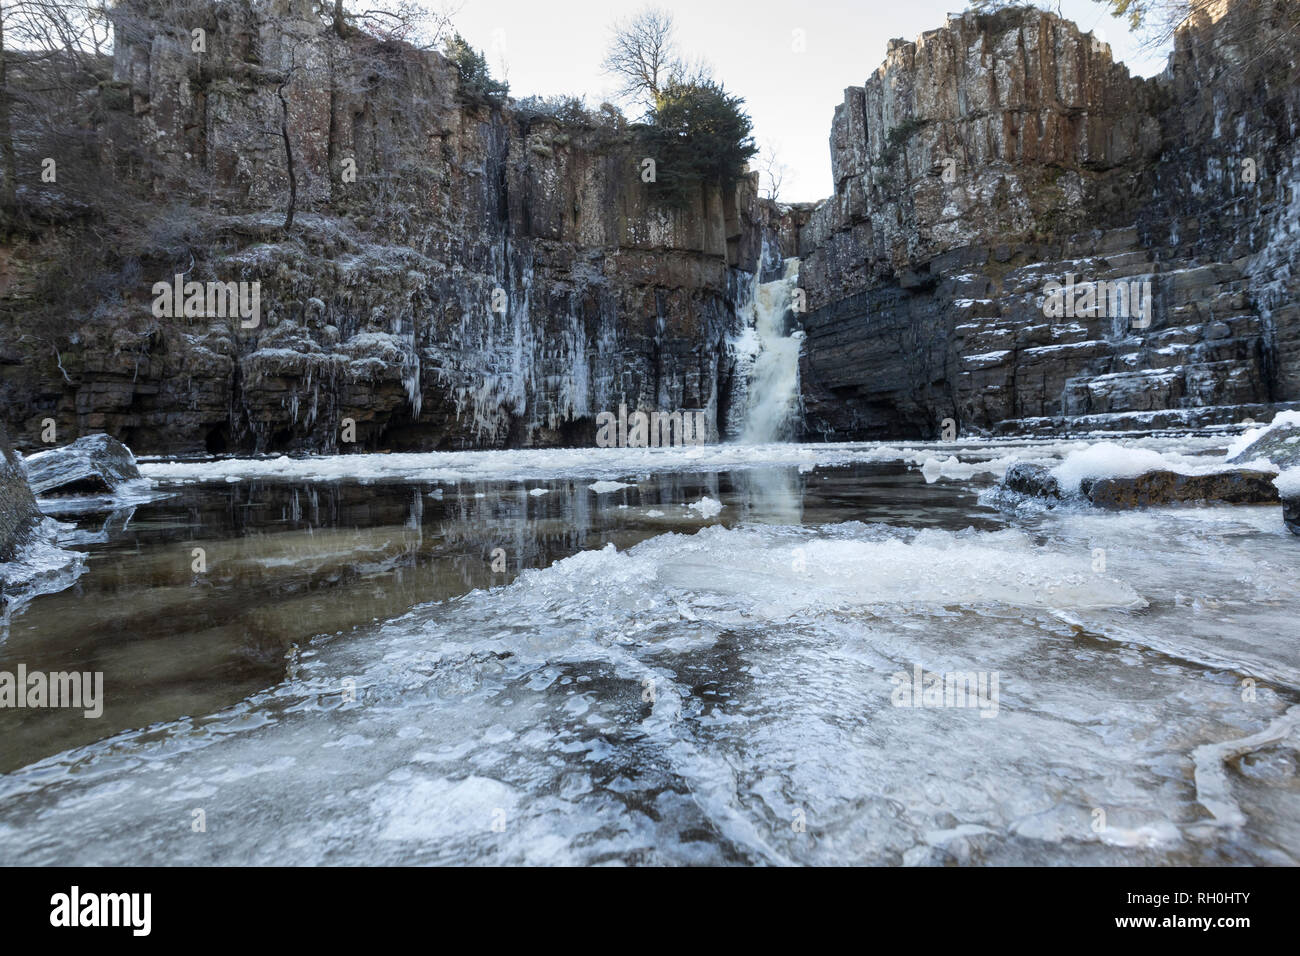 High Force, Middleton-in-Teesdale, County Durham, UK.  Thursday 31st January 2019. UK Weather.  After temperatures dropped to as low as minus 14 in some areas overnight, the River Tees and the waterfall of High Force near Middleton-in-Teesdale looked spectacular as they started to freeze over.  Credit: David Forster/Alamy Live News Stock Photo